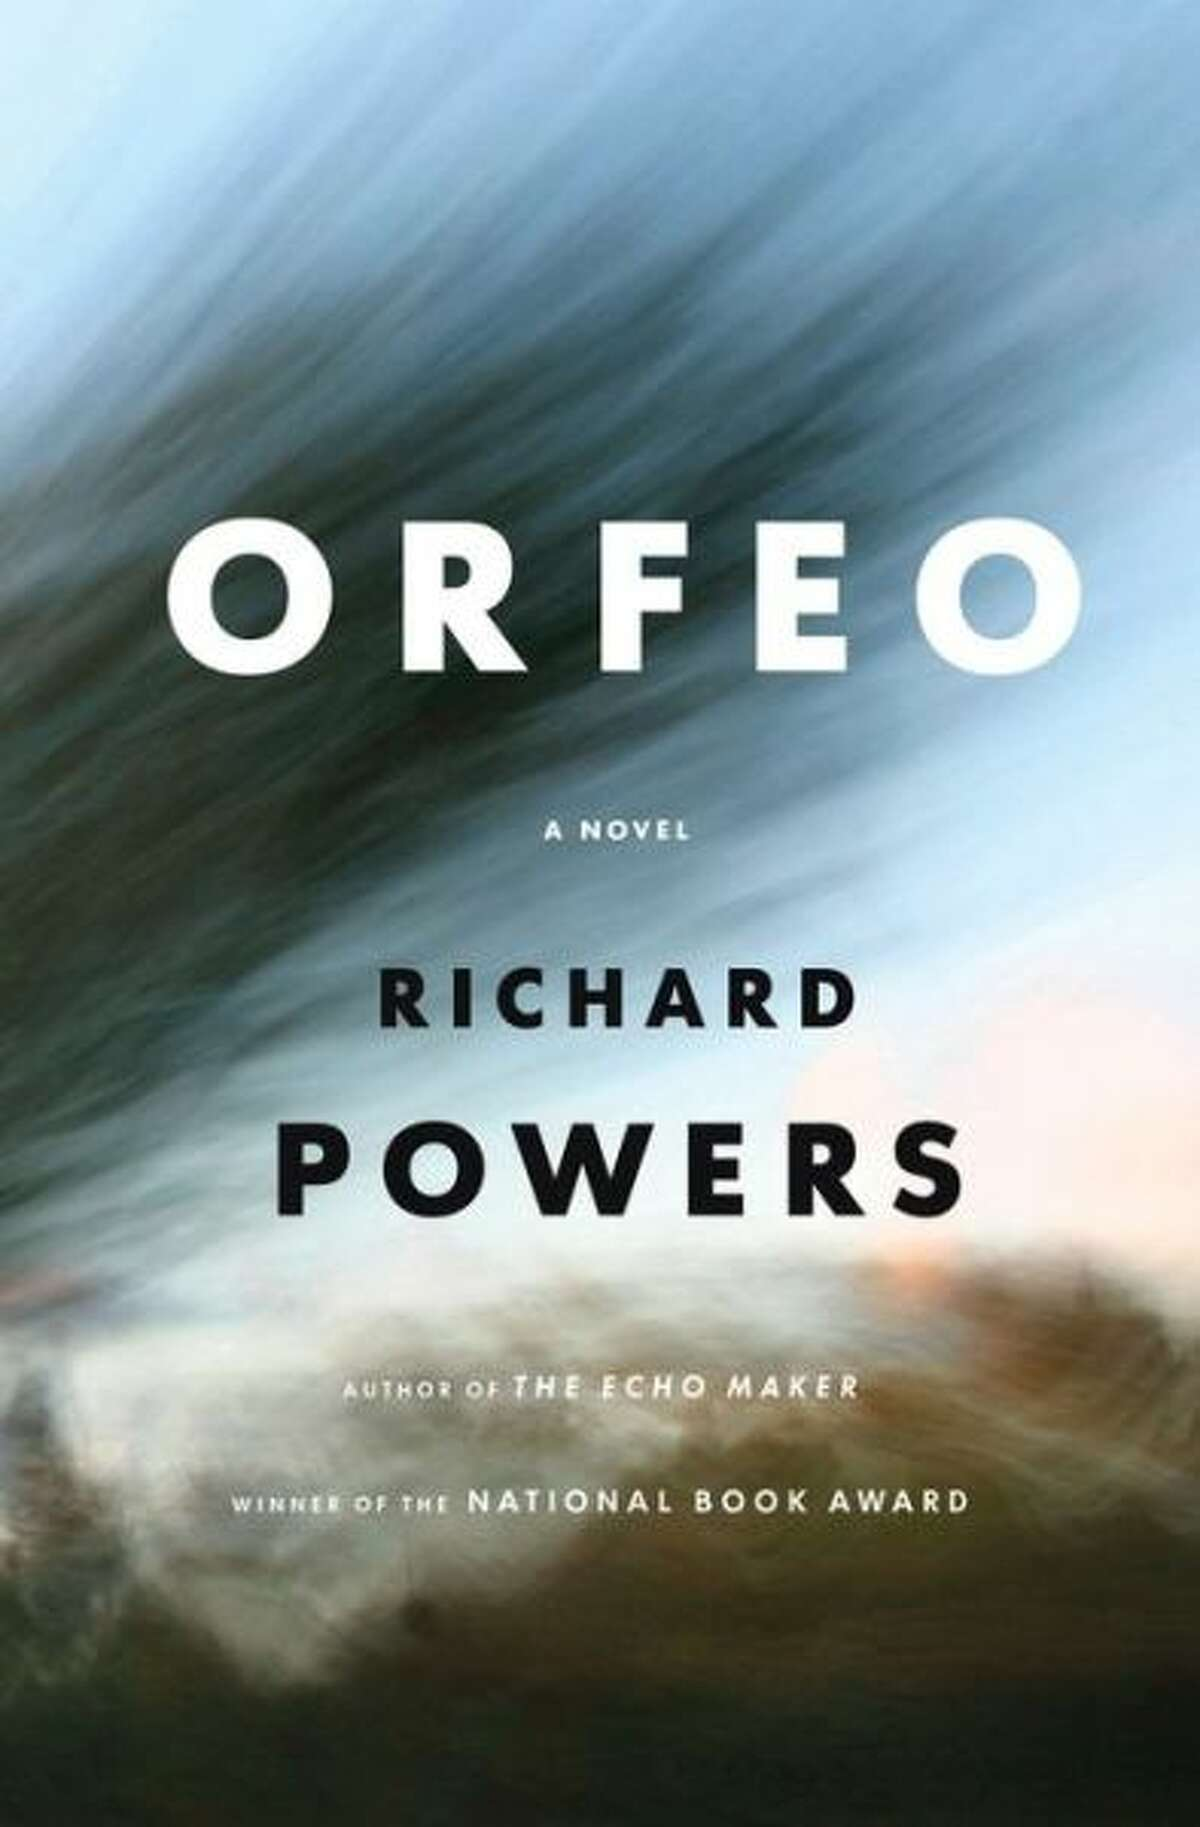 """""""Orfeo"""" by Richard Powers.Powers' astonishing novel captures one fictional composer's life in a text that is almost a soundtrack, by turns mysterious, dissonant, harmonious and sweet. Powers' lucid, emotional descriptions of music extend from compositions by Mahler to the contemporary fictional music composed by his protagonist, Peter Els, who wants only """"a roomful of grateful listeners."""" (W.W. Norton & Co.)"""